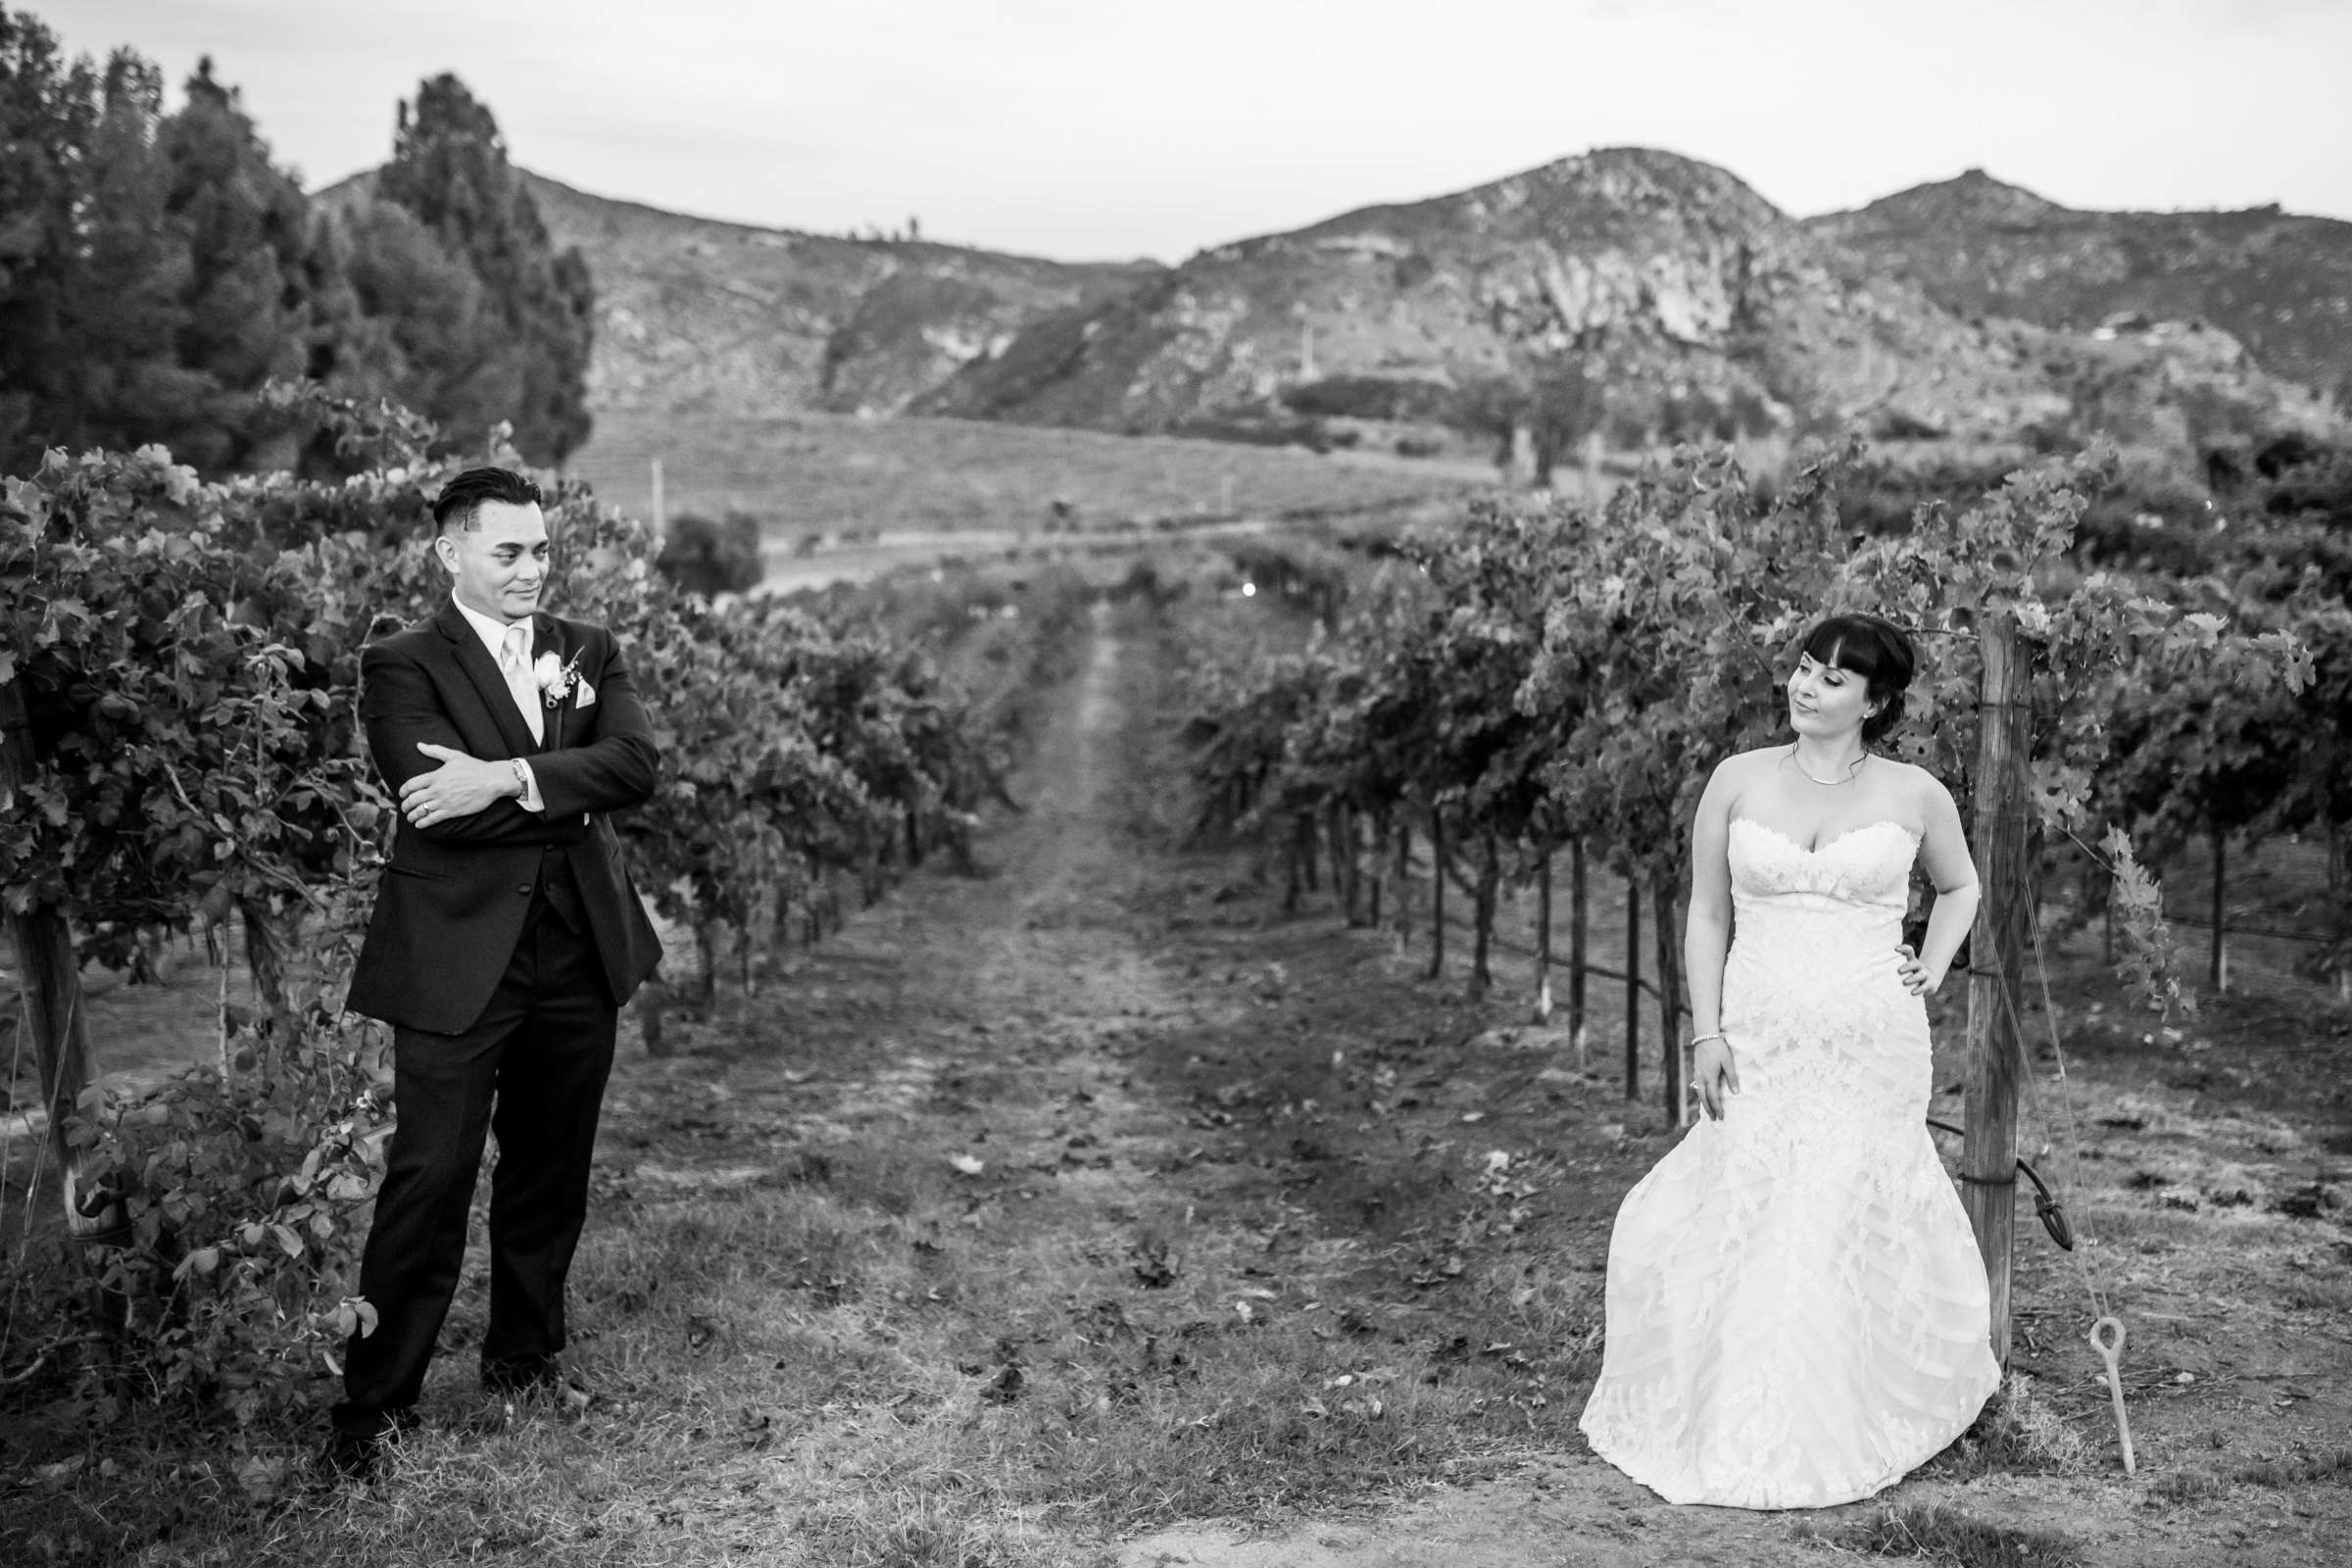 Orfila Vineyards Wedding, Tulasi and Richard Wedding Photo #46 by True Photography